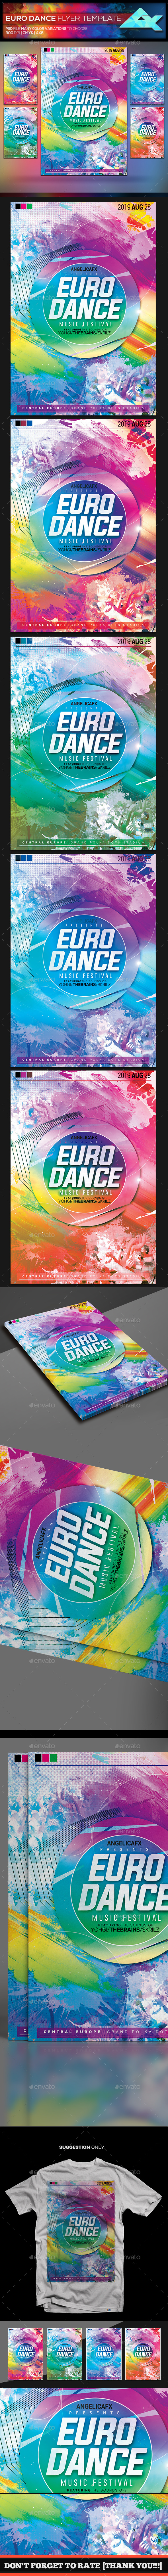 Euro Dance Music Festival Flyer Template - Events Flyers